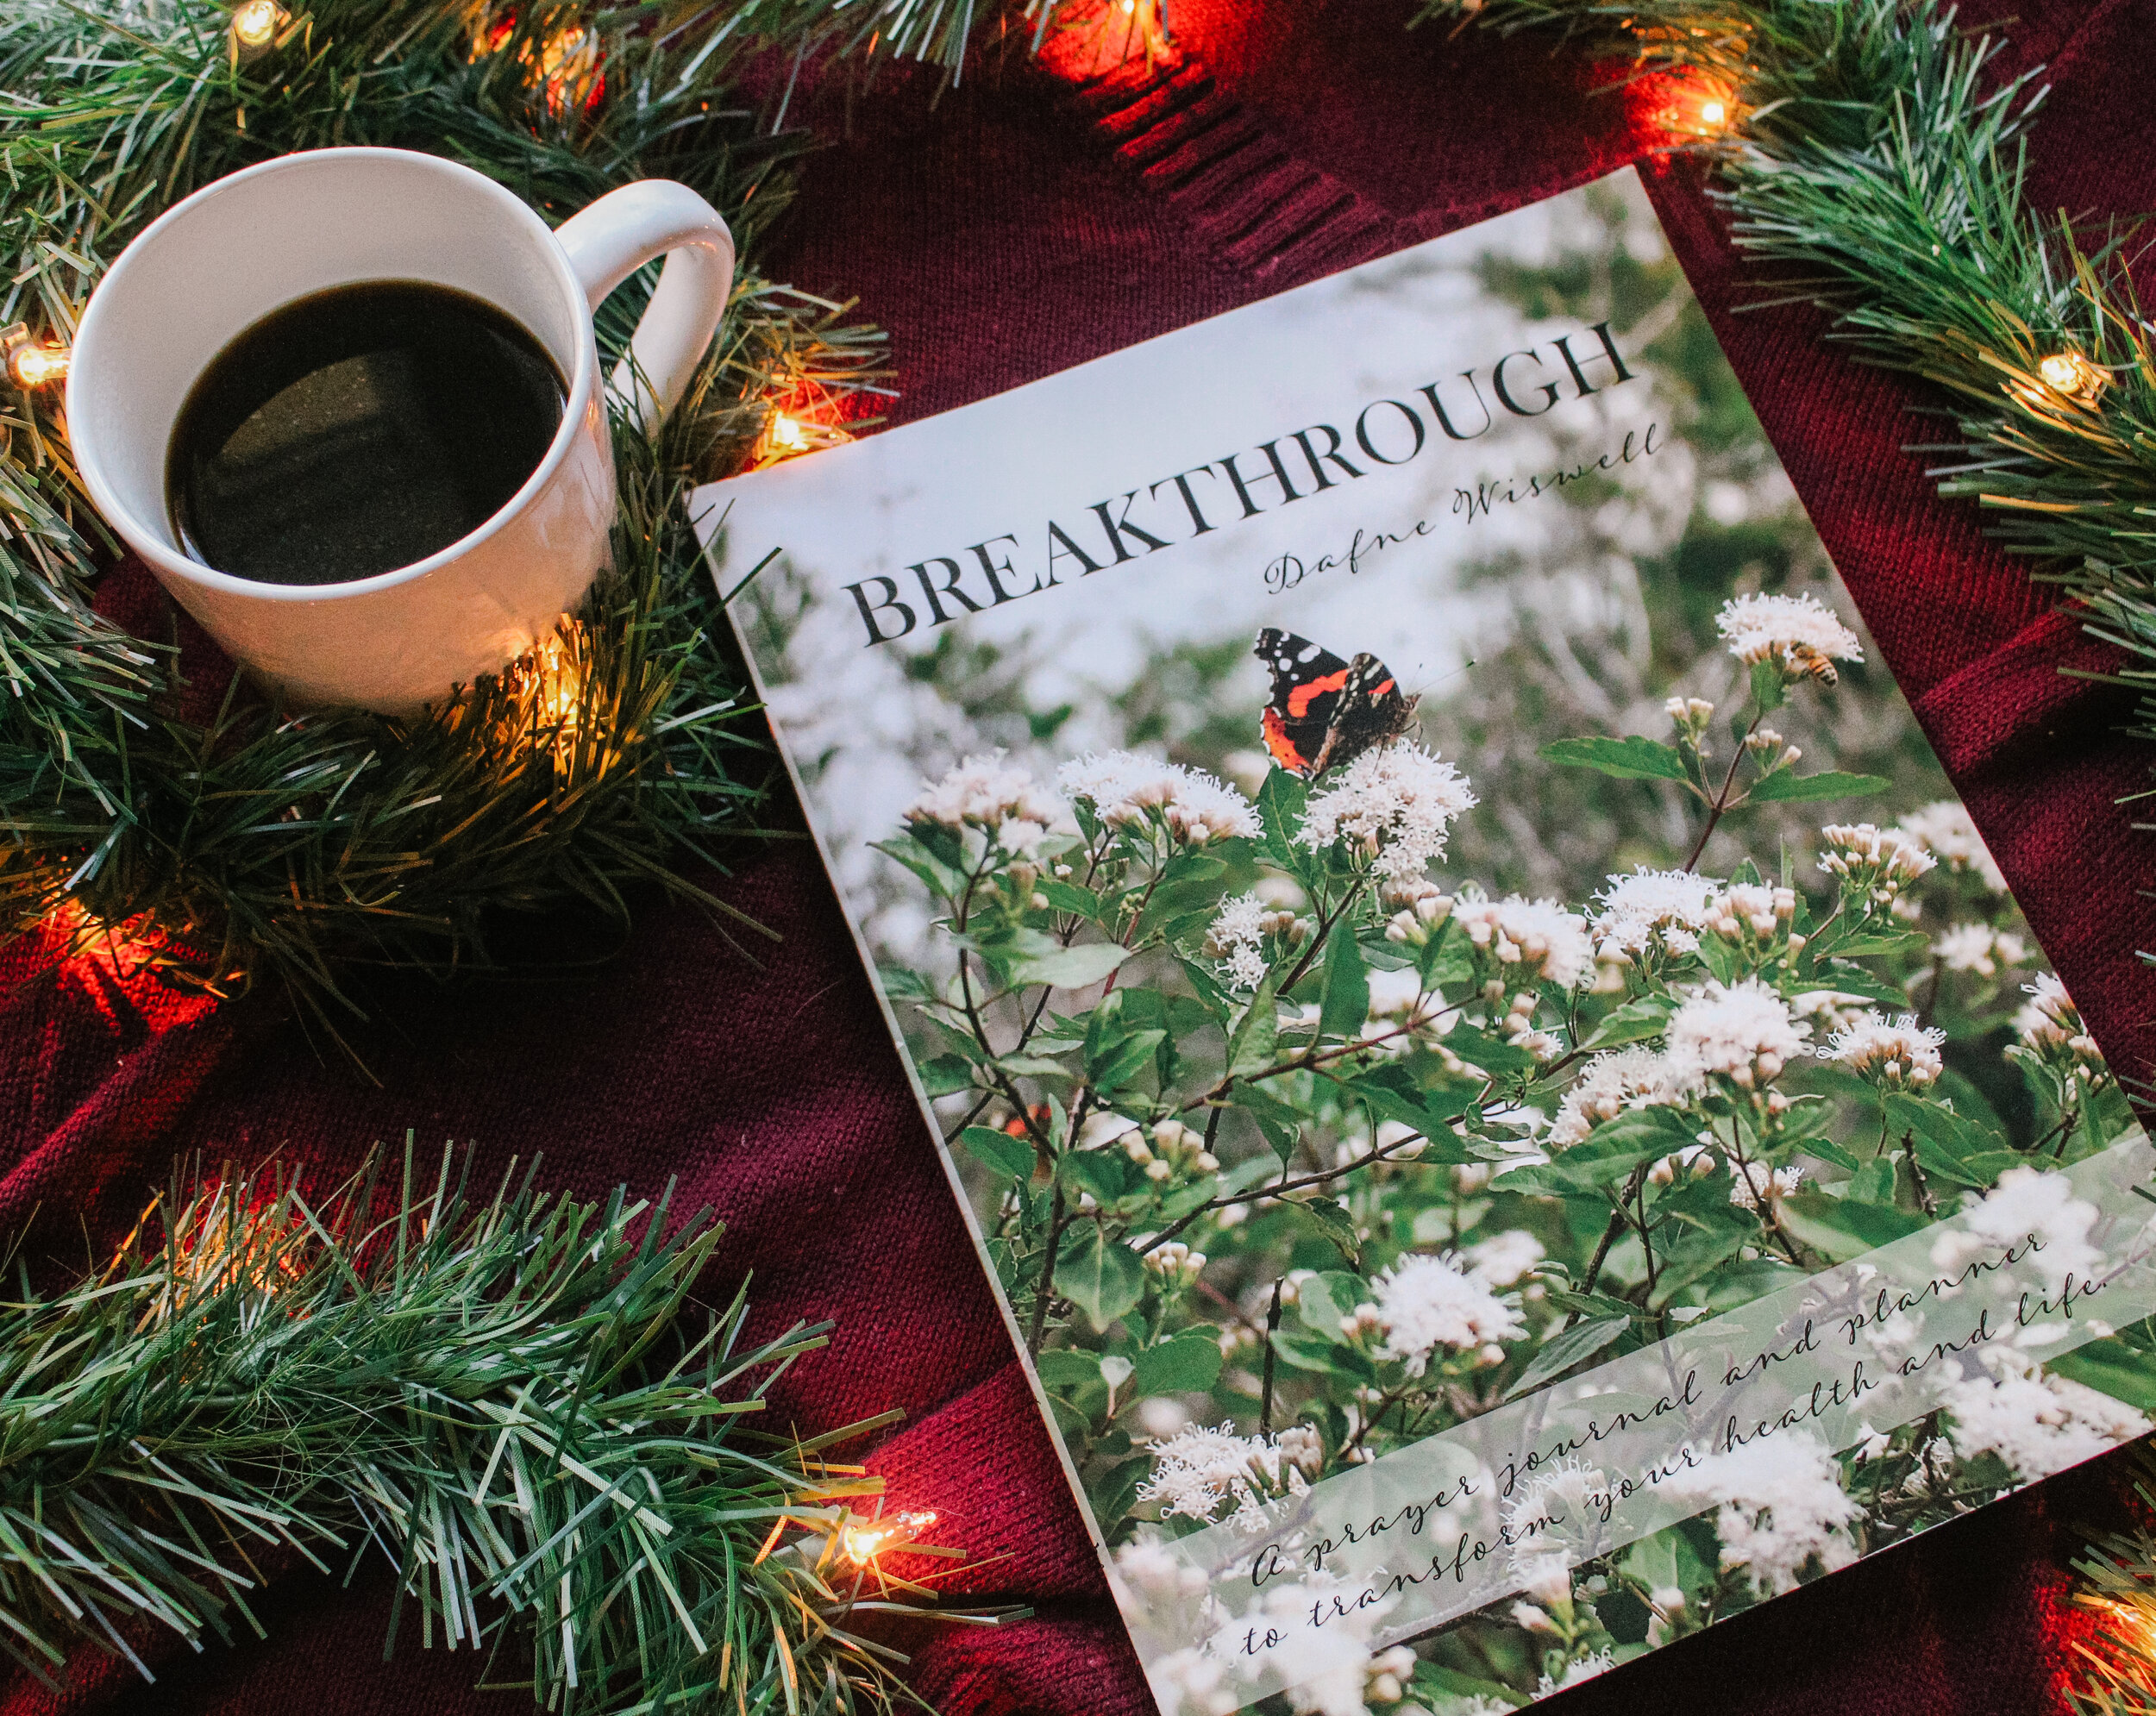 - BREAKTHROUGH is an invitation to experience radical transformation in body, mind, faith, and life. Packed with real-life stories, prayerful journaling exercises, and practical tools, these pages will propel you forward on your journey.